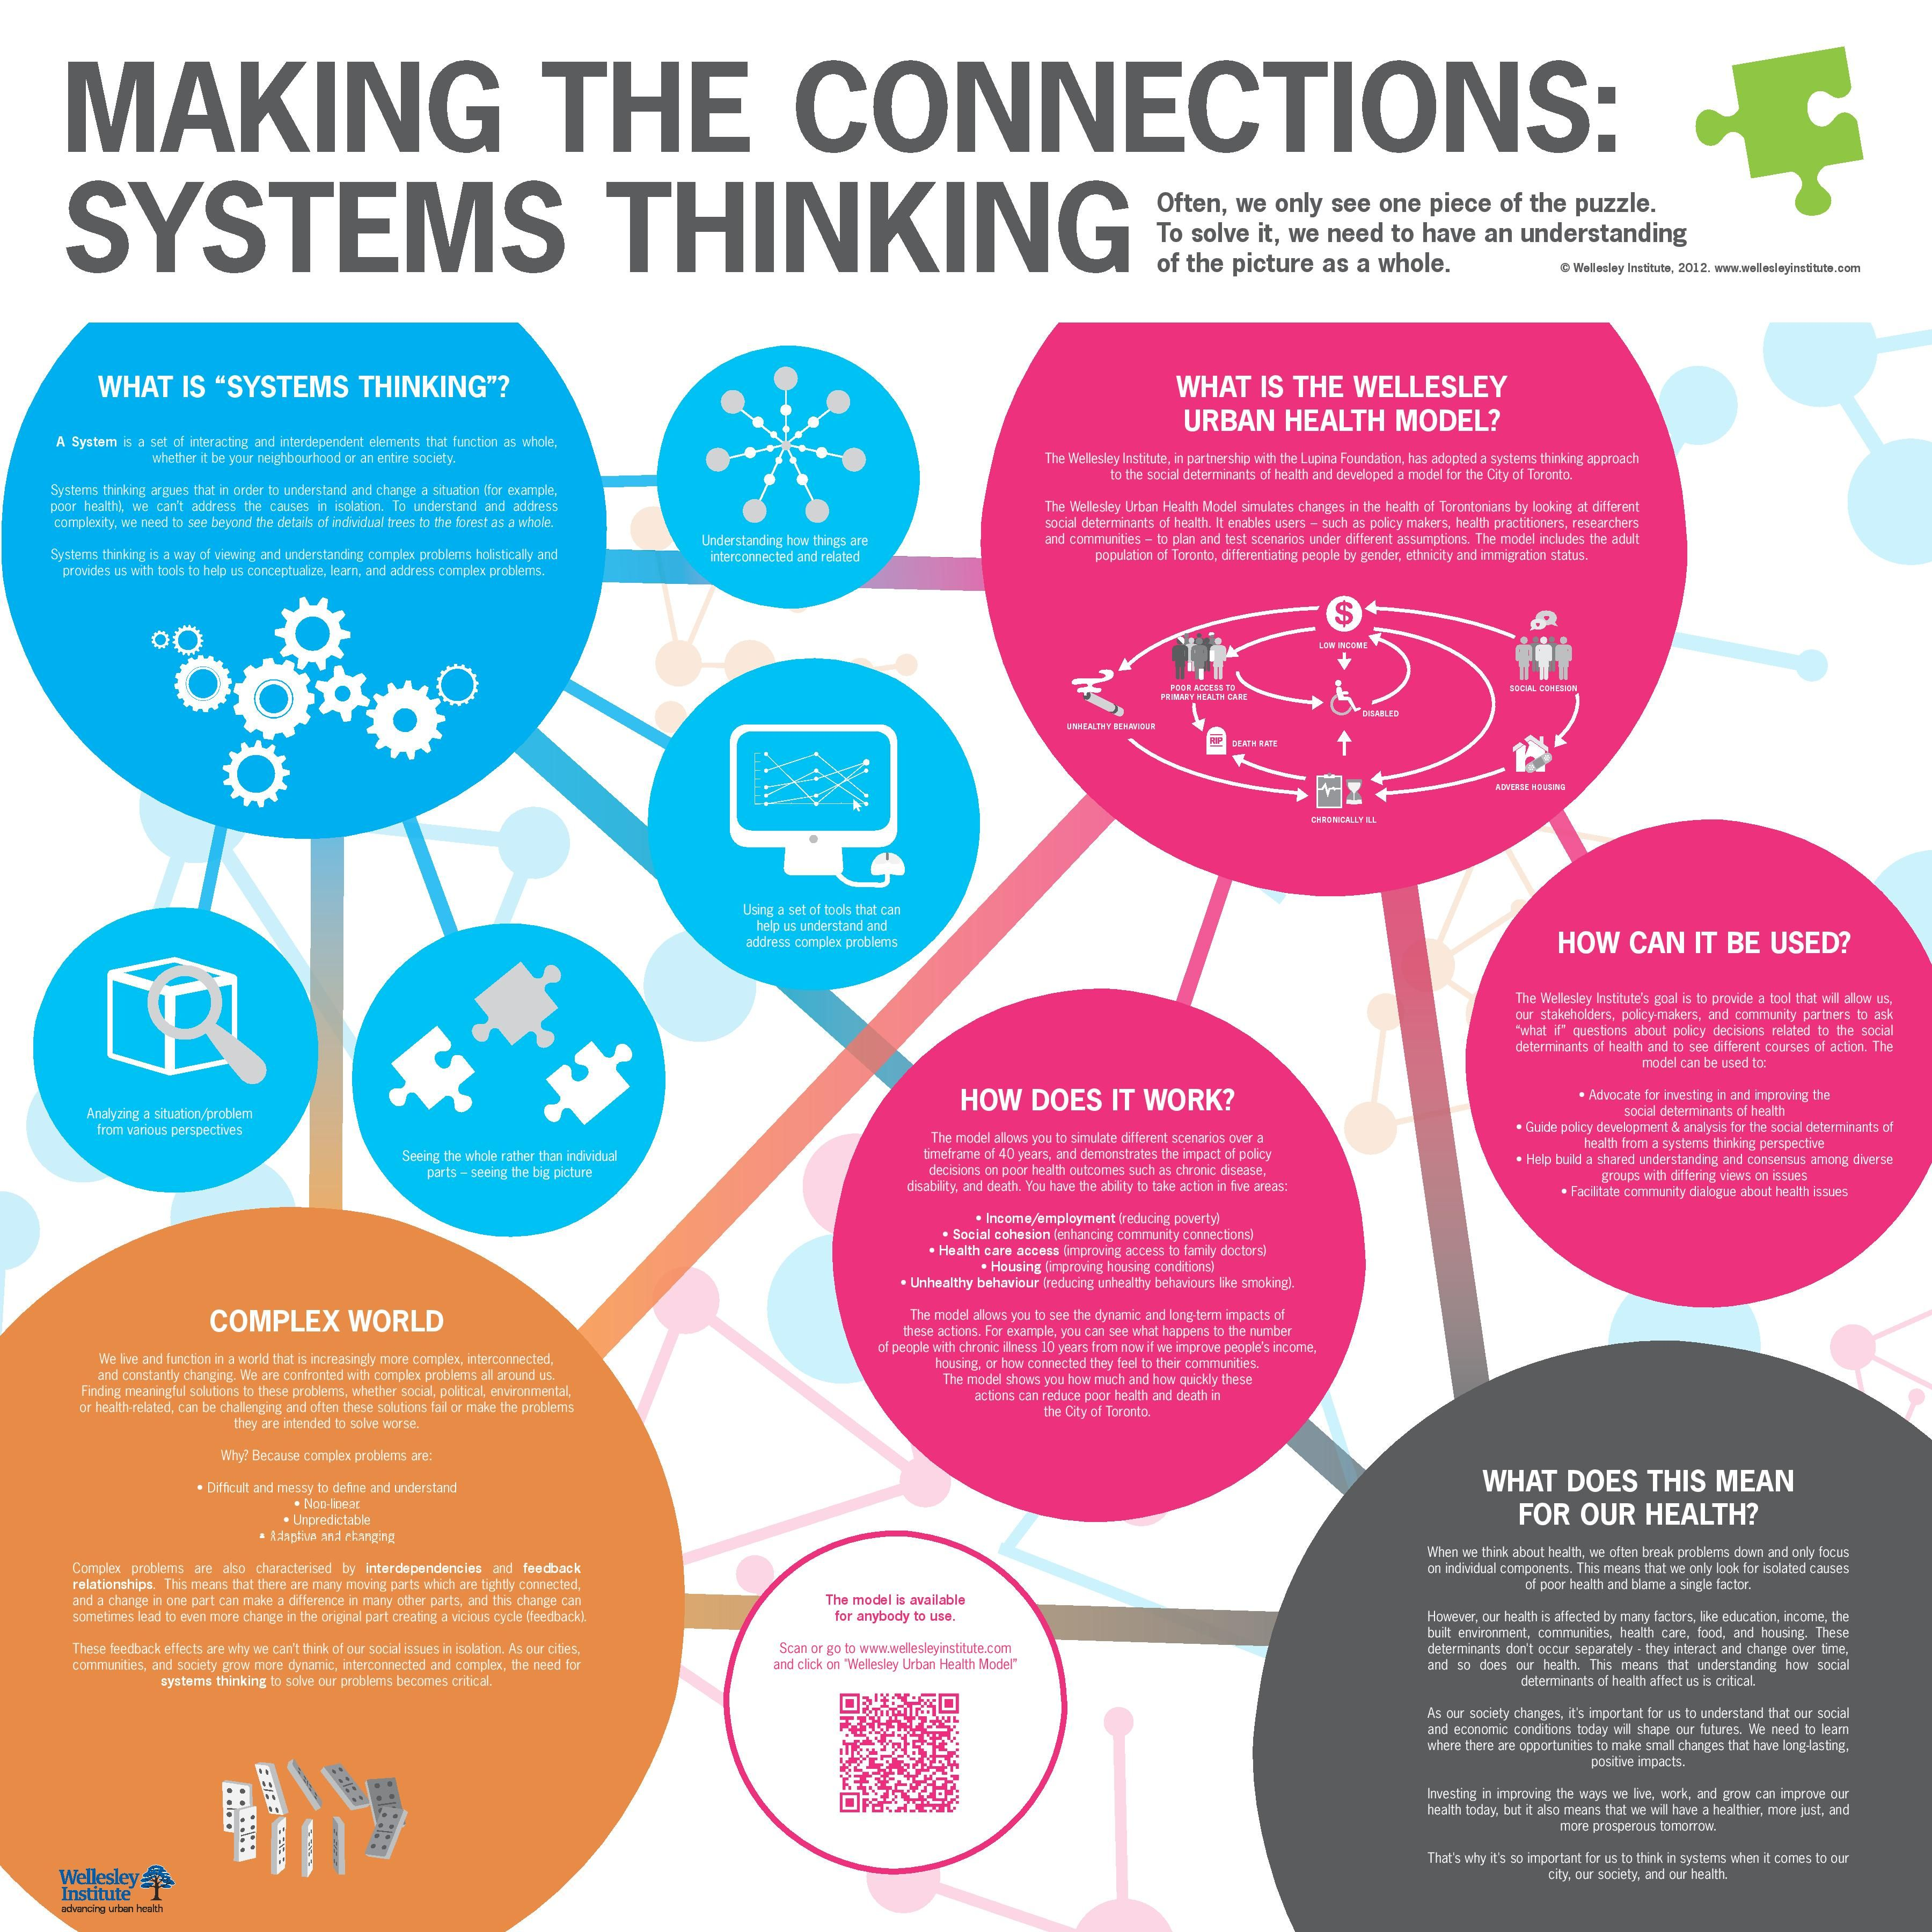 It's all interconnected. Systems theory, Design thinking